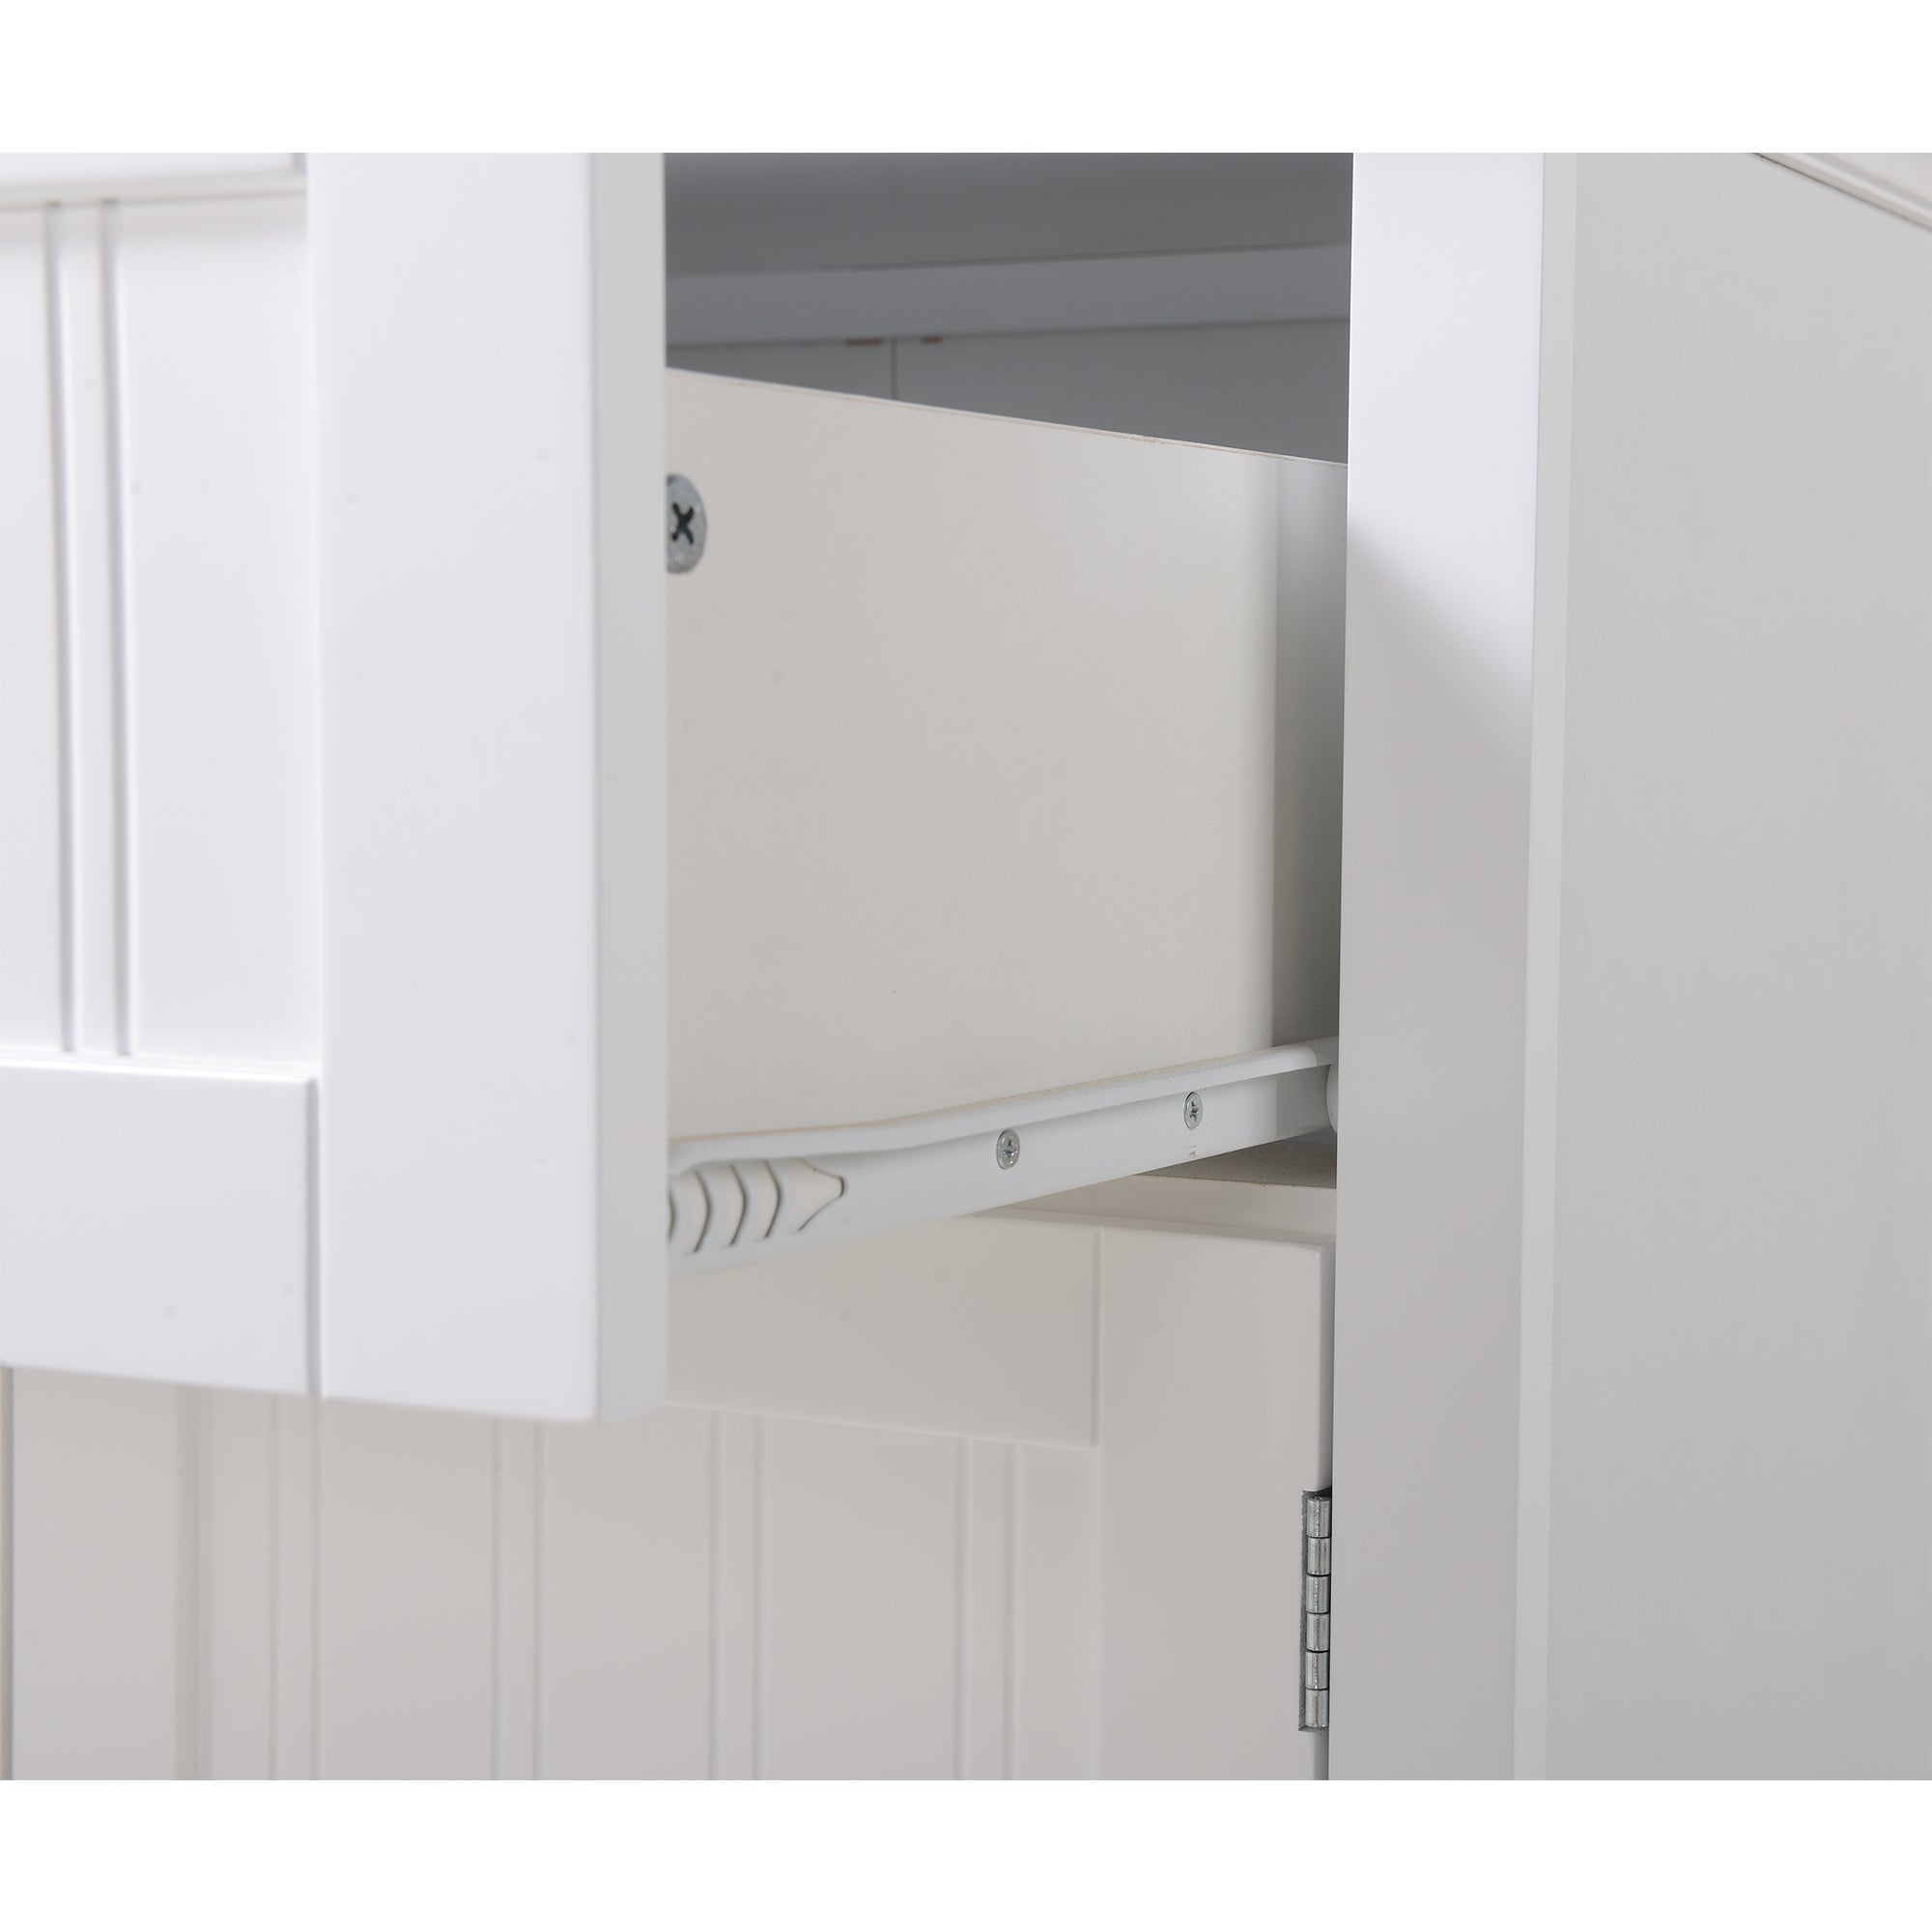 kitchen ny in silver and we inserts black glass three match hardware cupboard doors to best replacements your brooklyn chester en for cabinet offer copper finishes our door metal